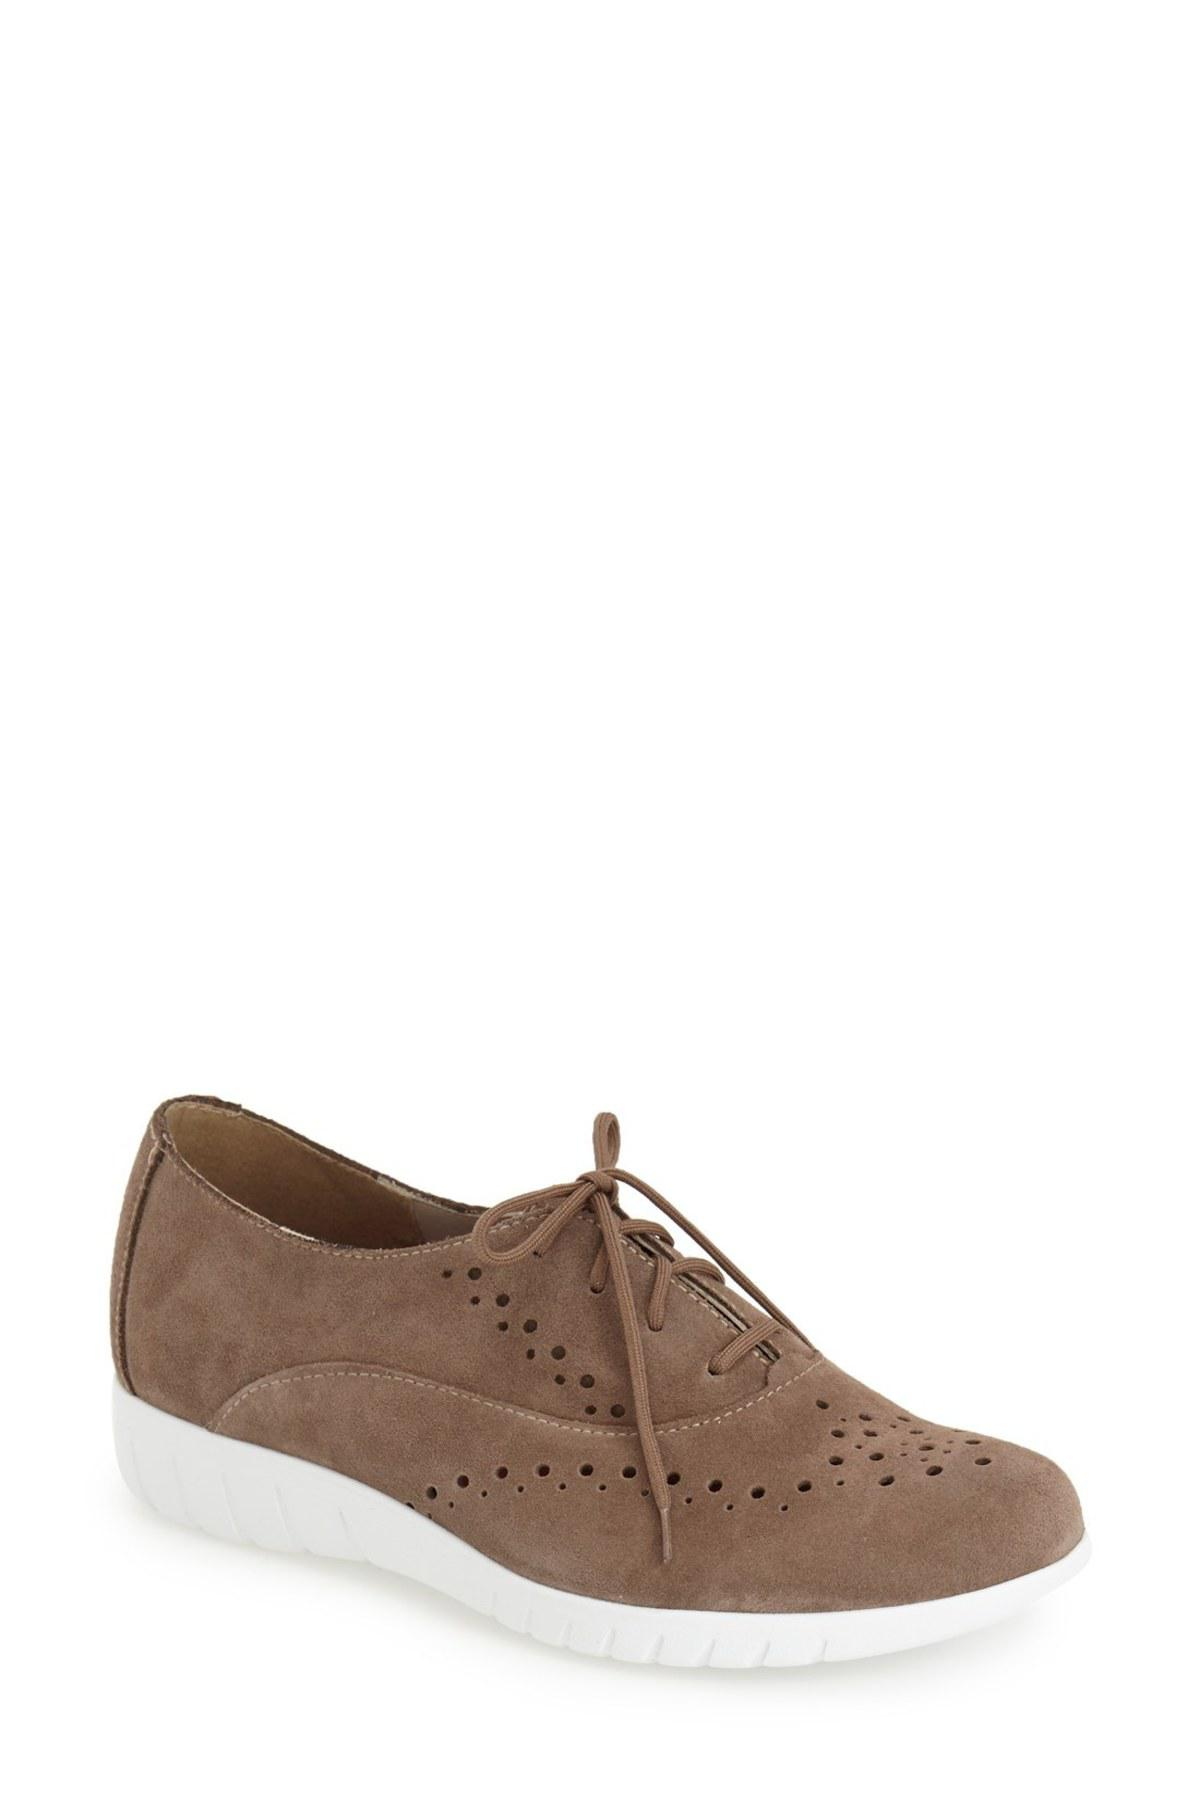 Munro Wellesley Oxford Sneaker - Multiple Widths Available qIvuzIFjX9